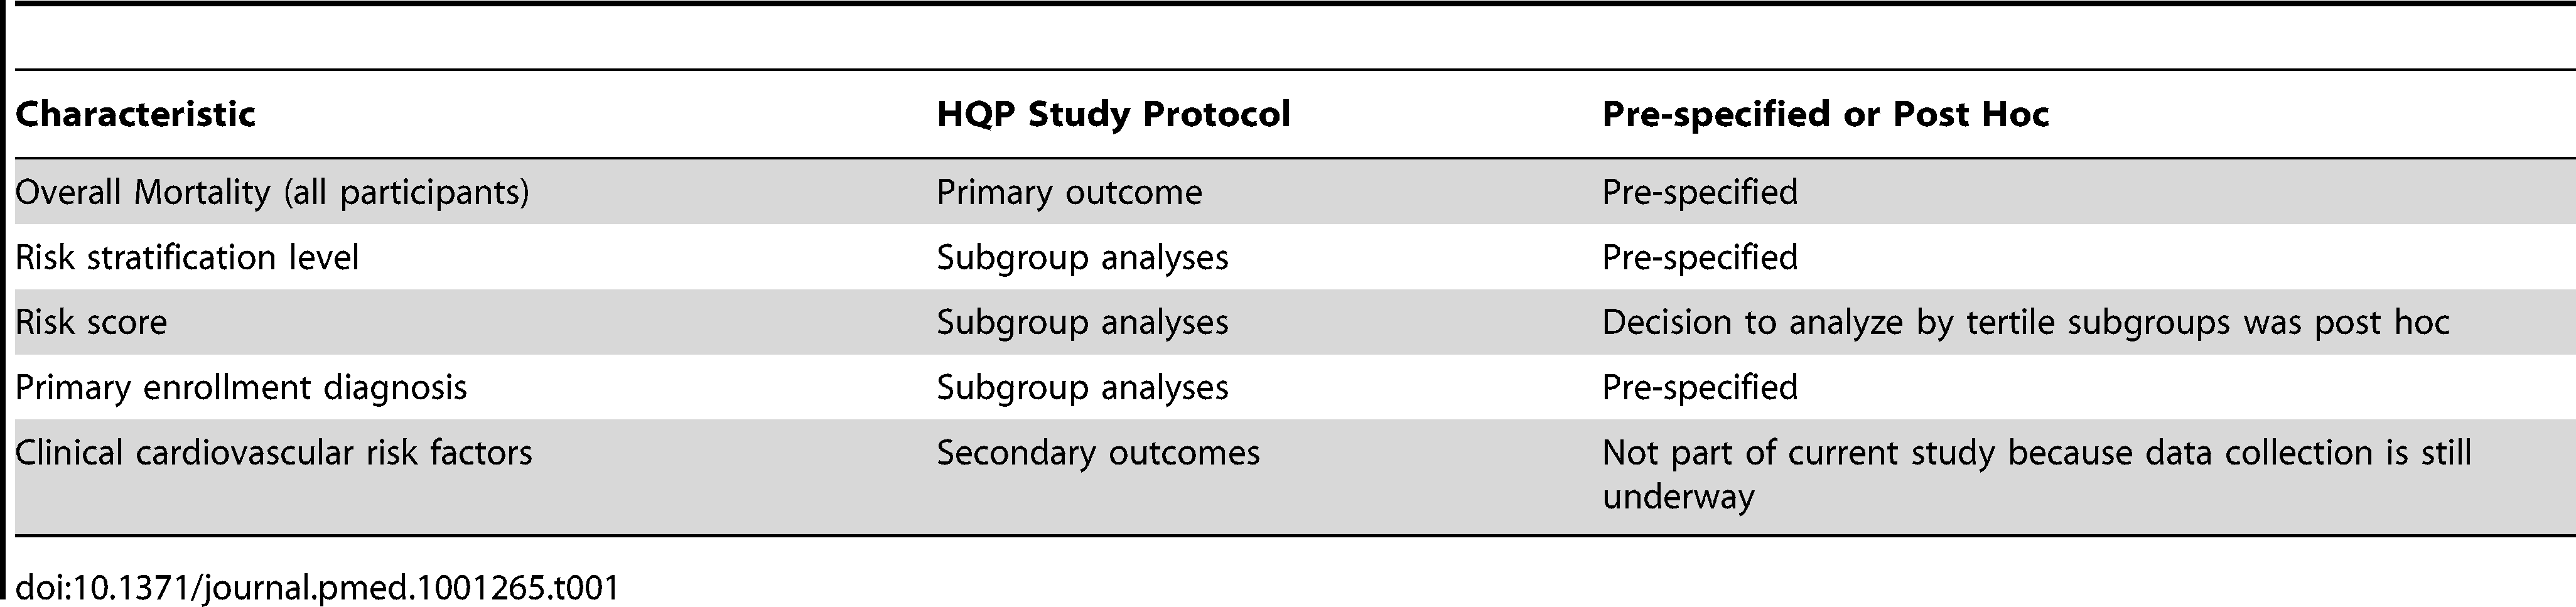 Outcomes and subgroup analyses specified in the study protocol.